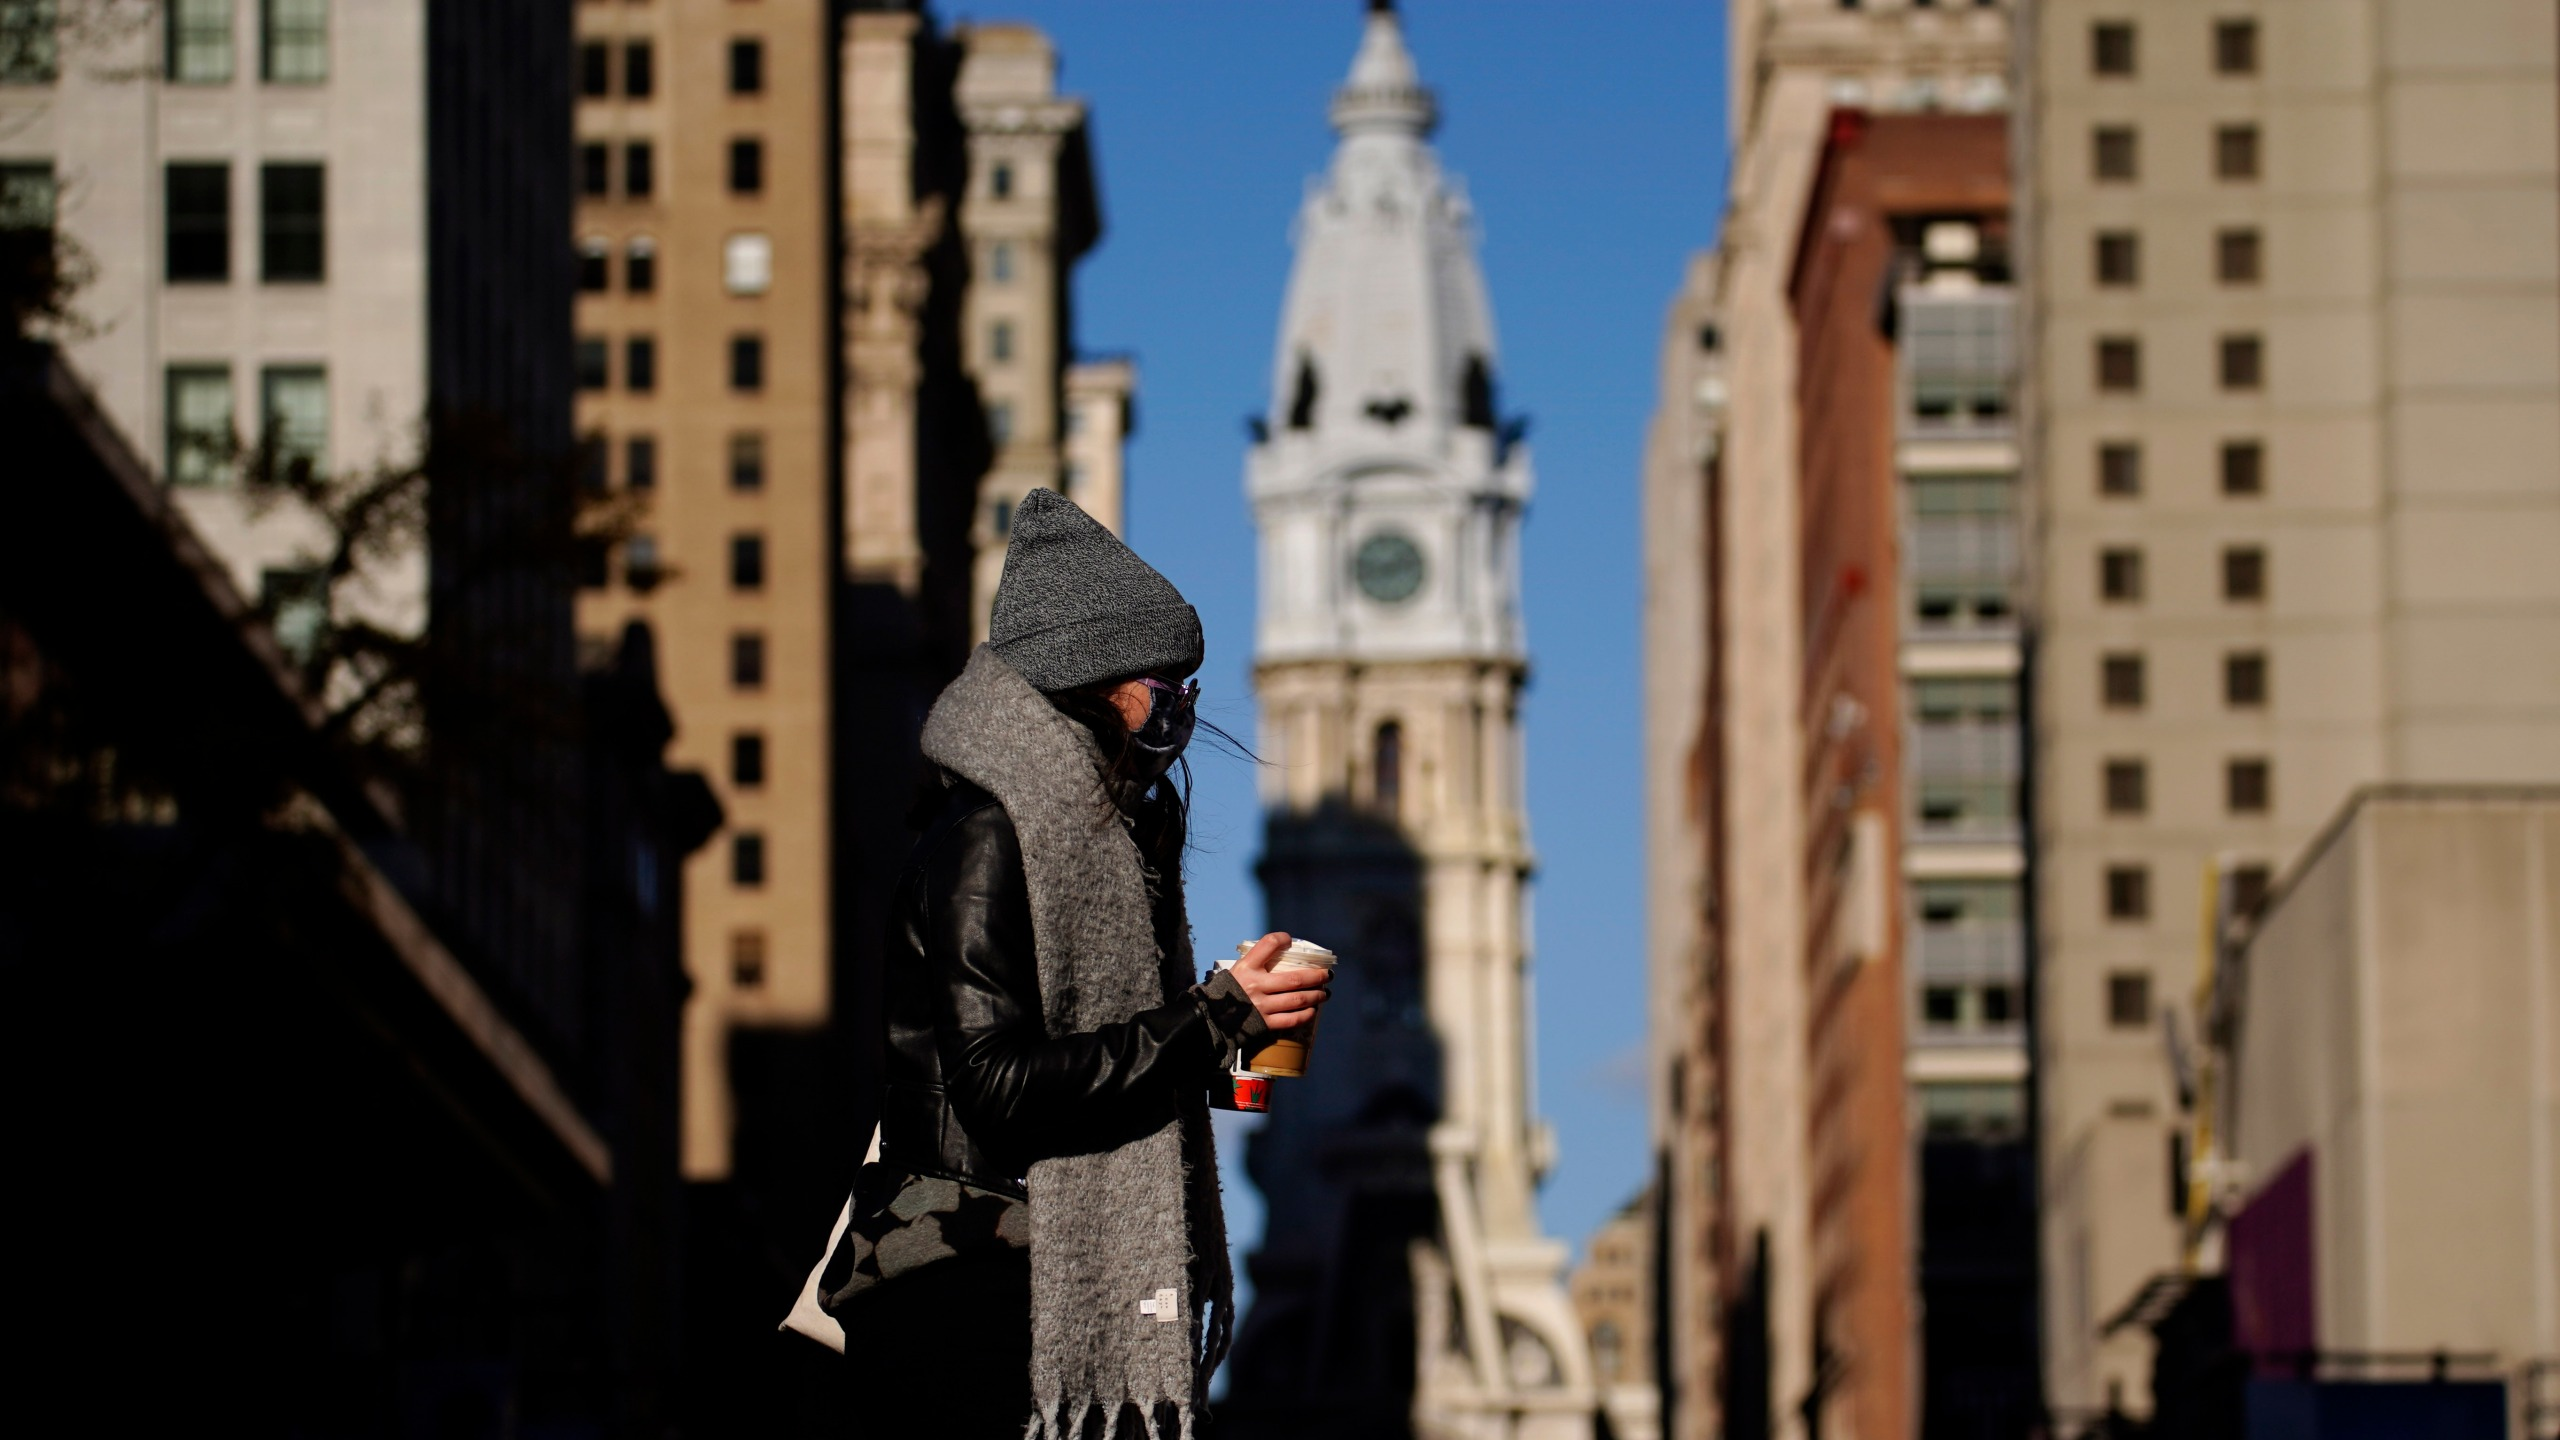 In this Nov. 18, 2020, photo, a person wearing a face mask crosses Broad Street in Philadelphia. (AP Photo/Matt Slocum)